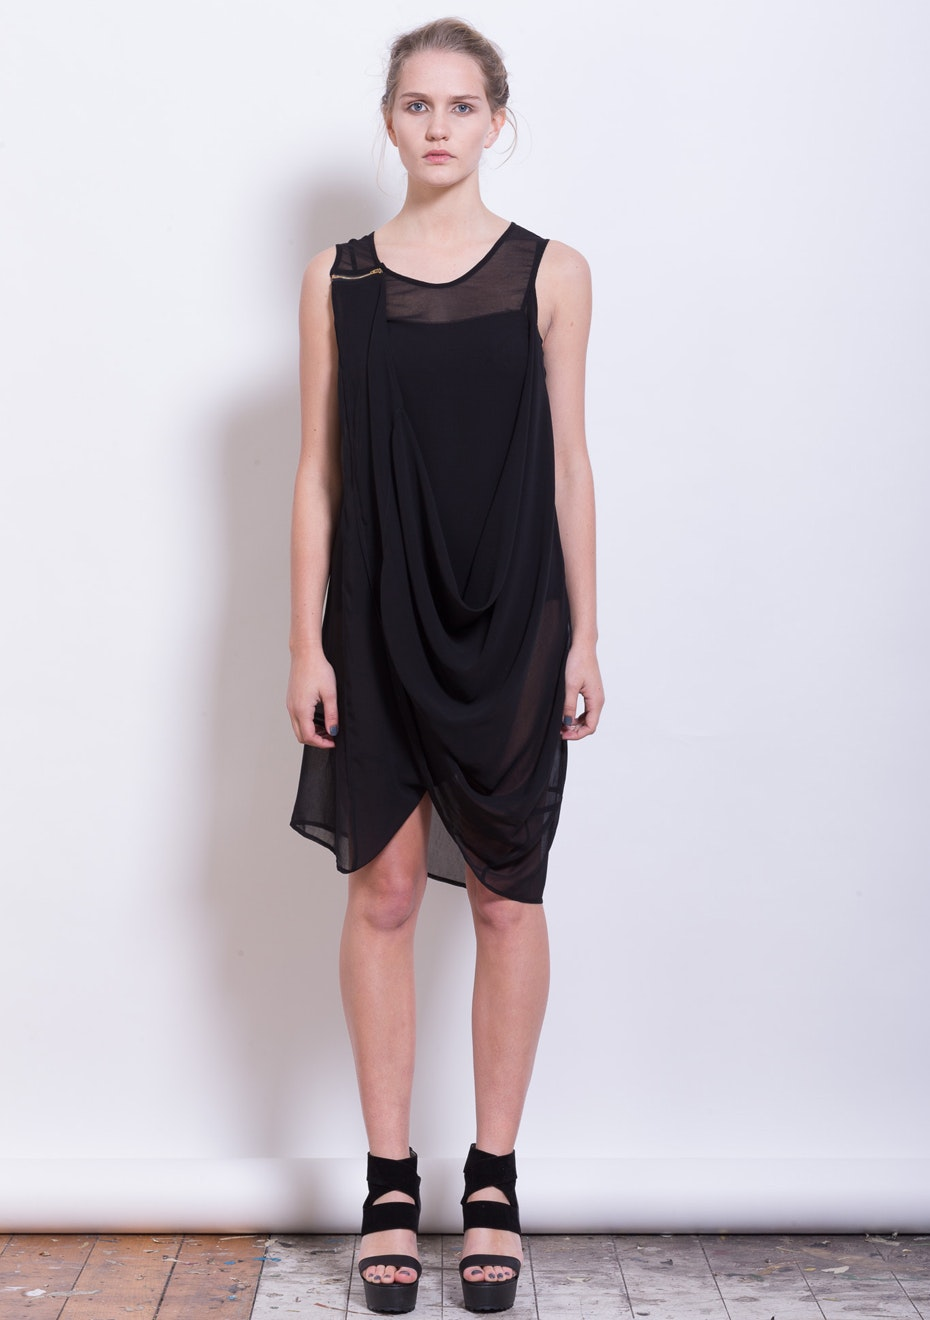 X-Plain - Magical Display Dress - Black